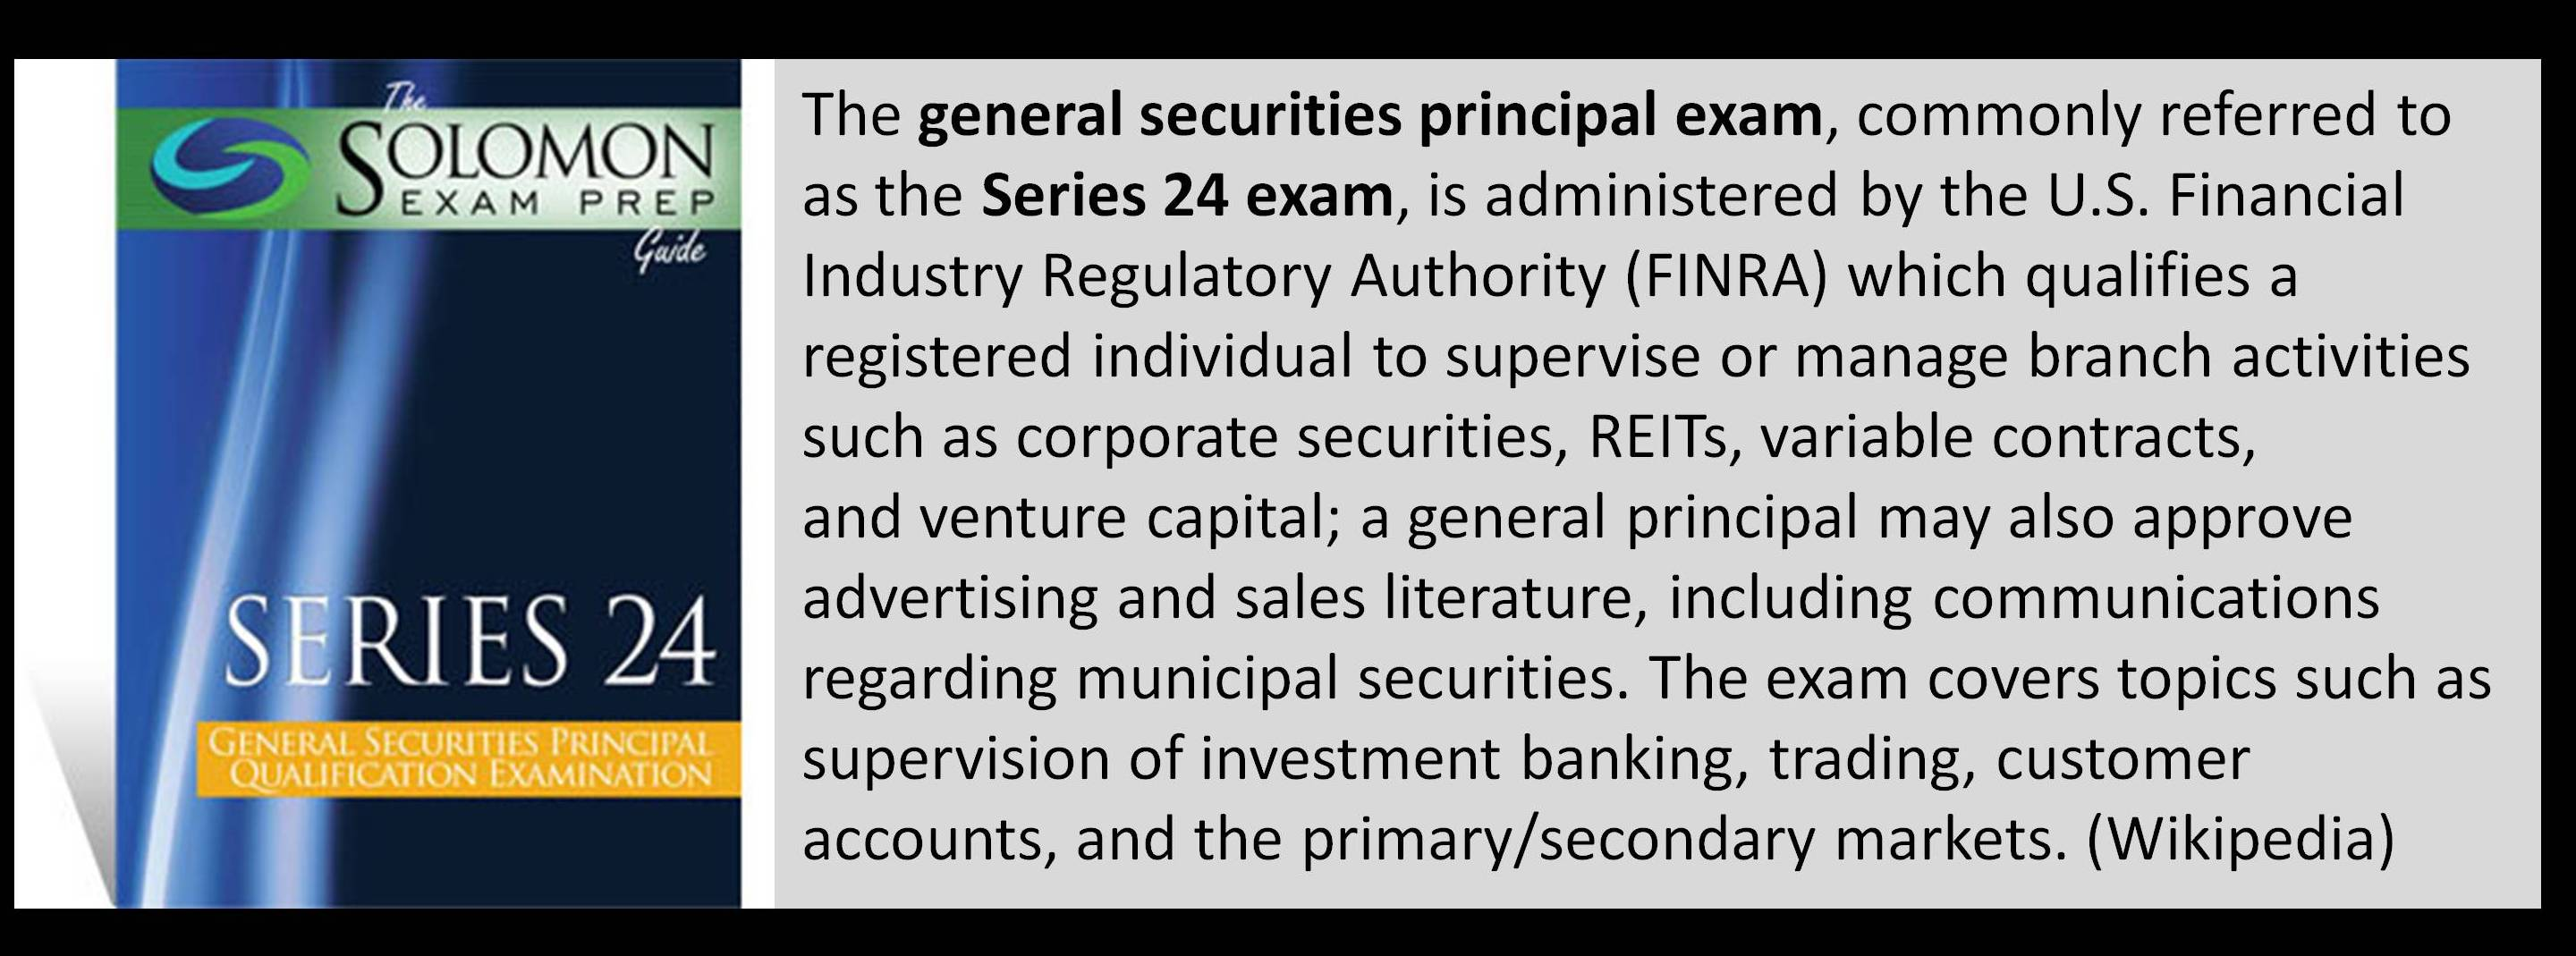 Series 24 general securities principal